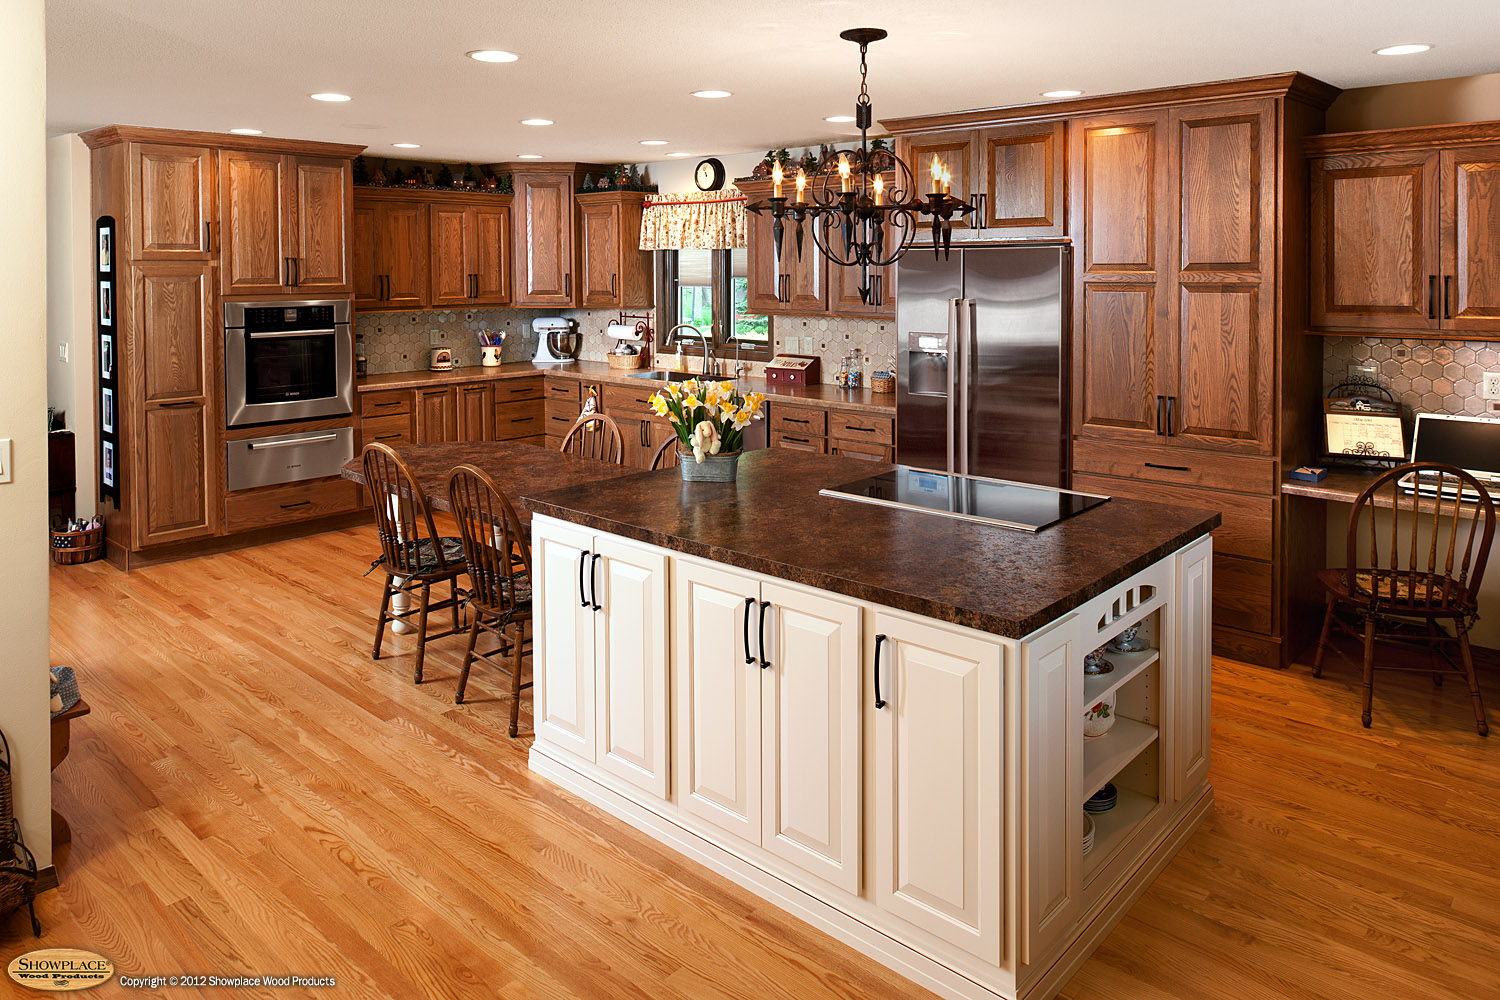 Showplace Kitchen Cabinets Showplace Wood Cabinetry Kitchen And Bath Remodeling